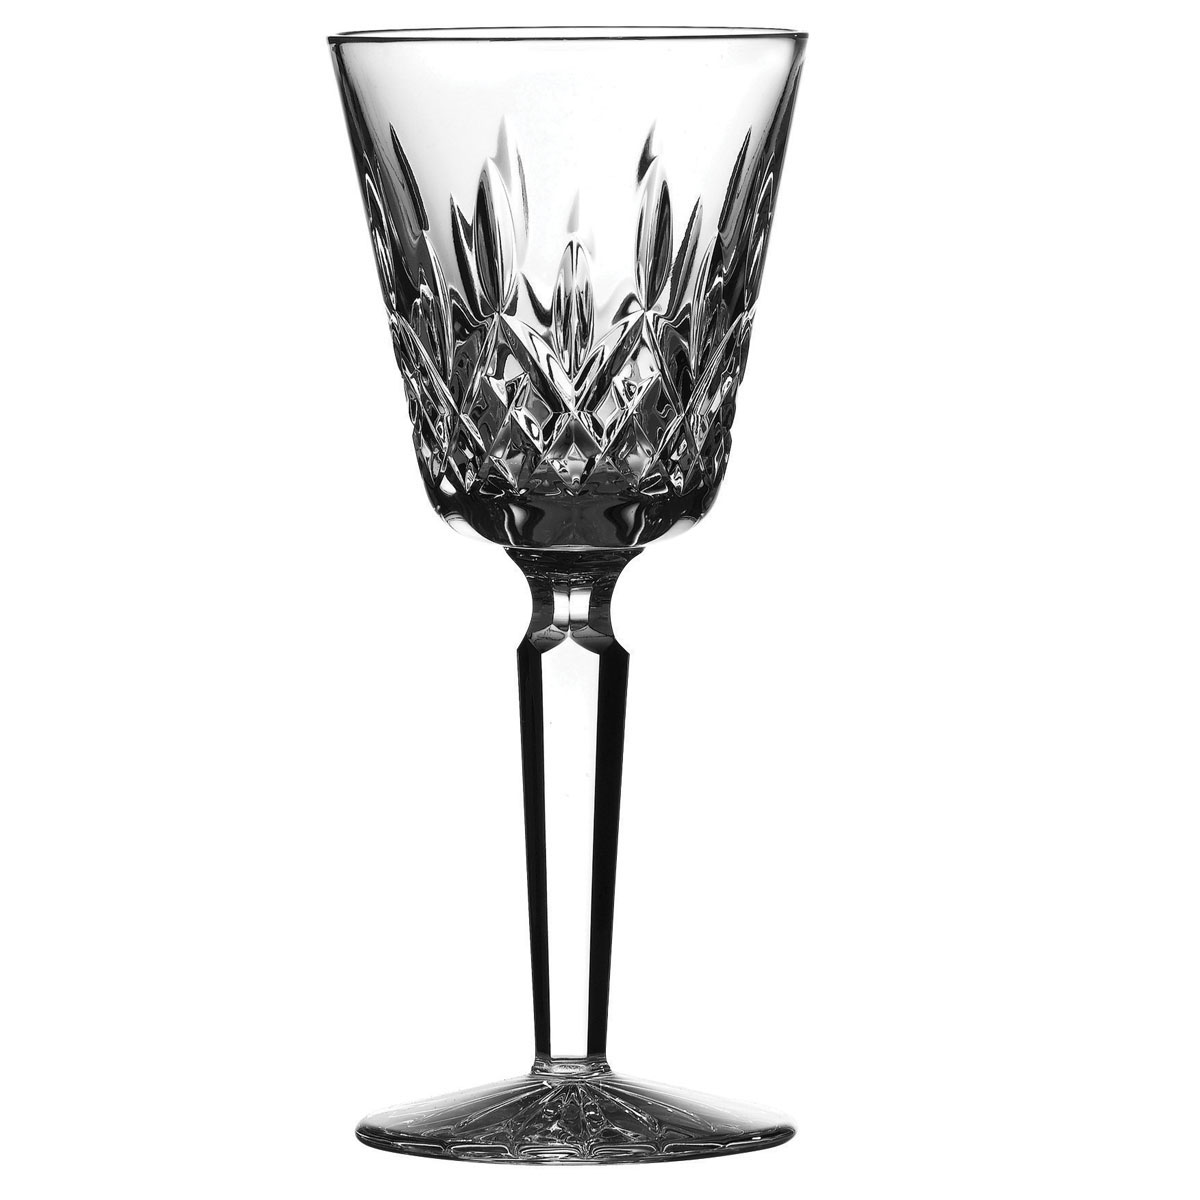 Waterford Crystal, Lismore Tall Claret Crystal Wine Glass, Single